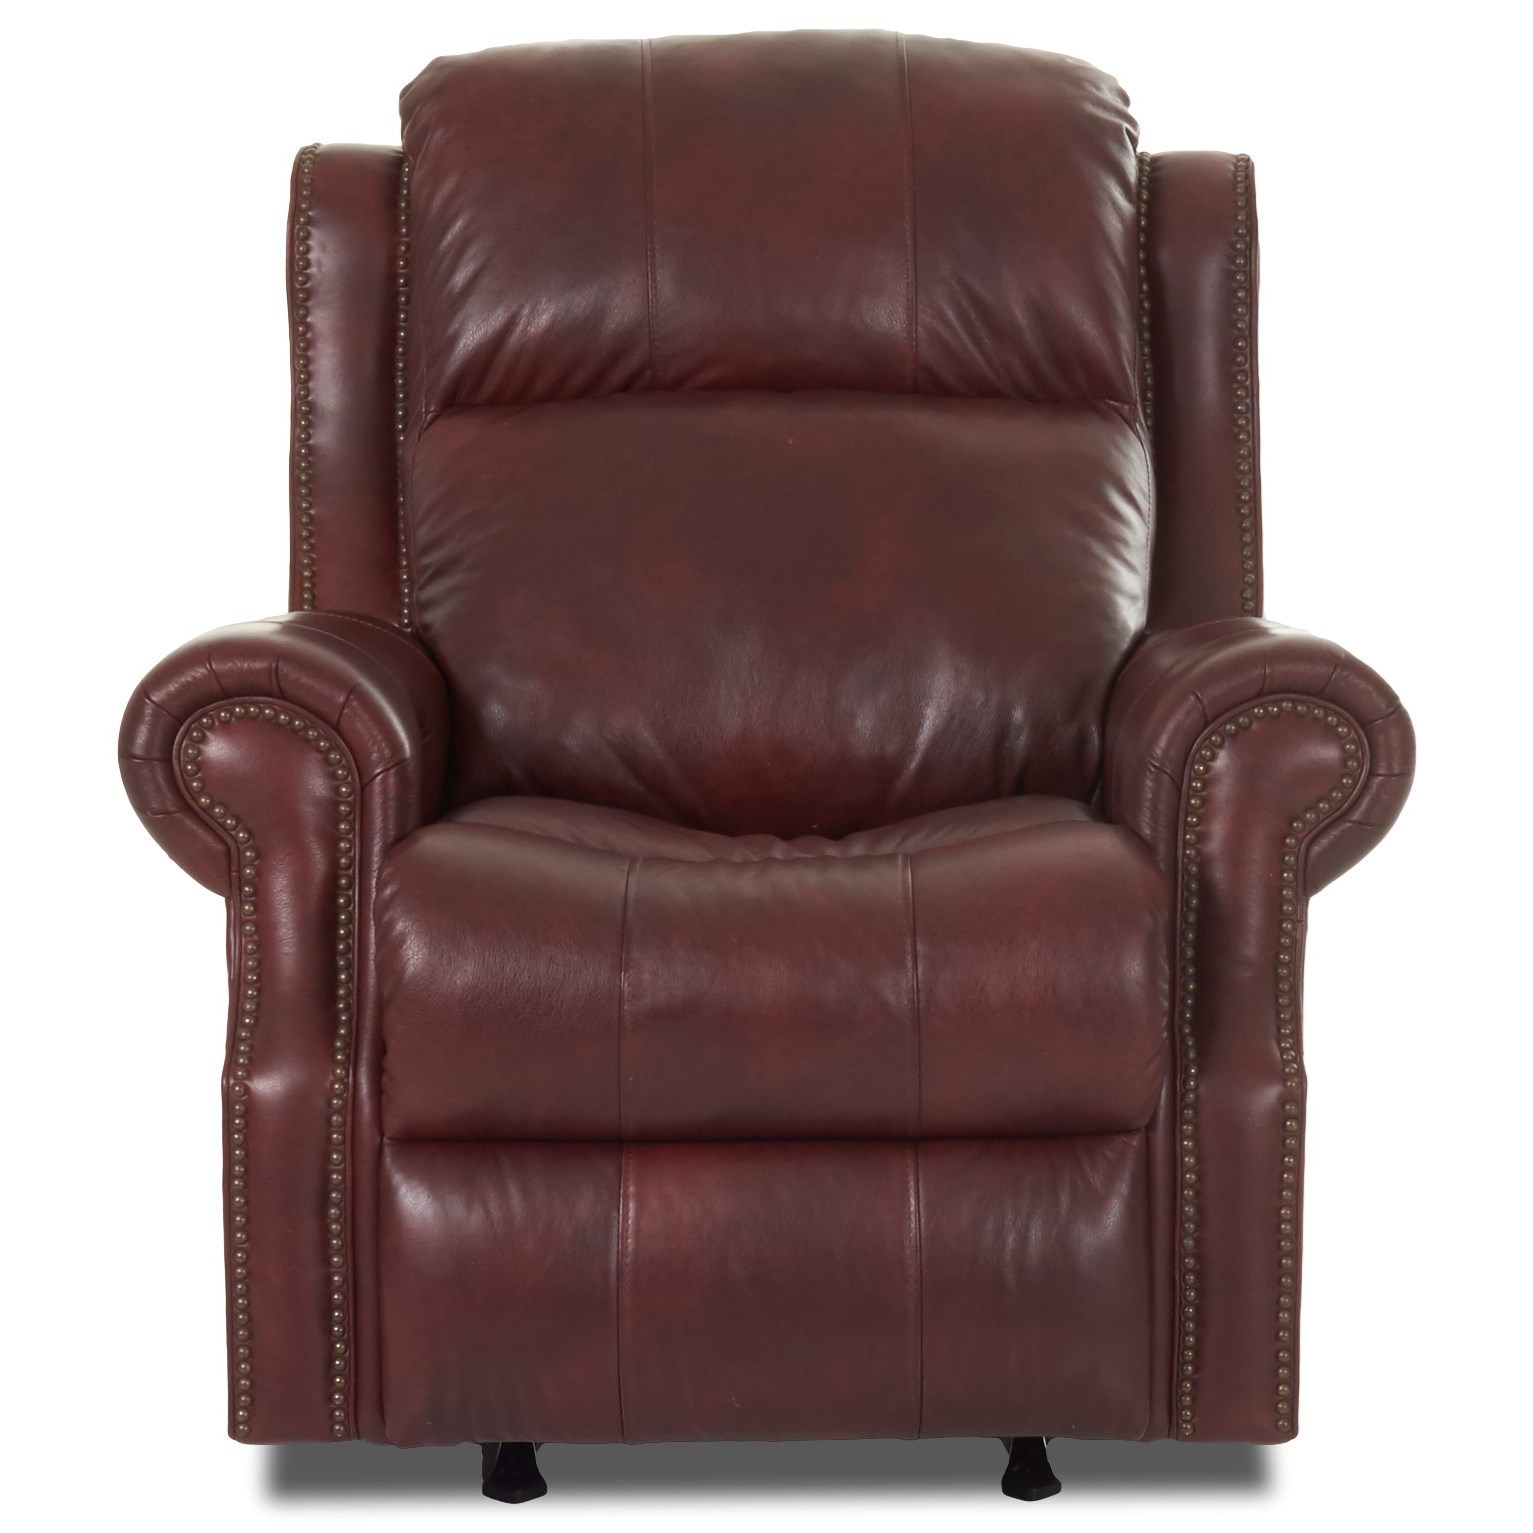 Traditional Power Reclining Chair with Power Tilt Headrest and USB Port